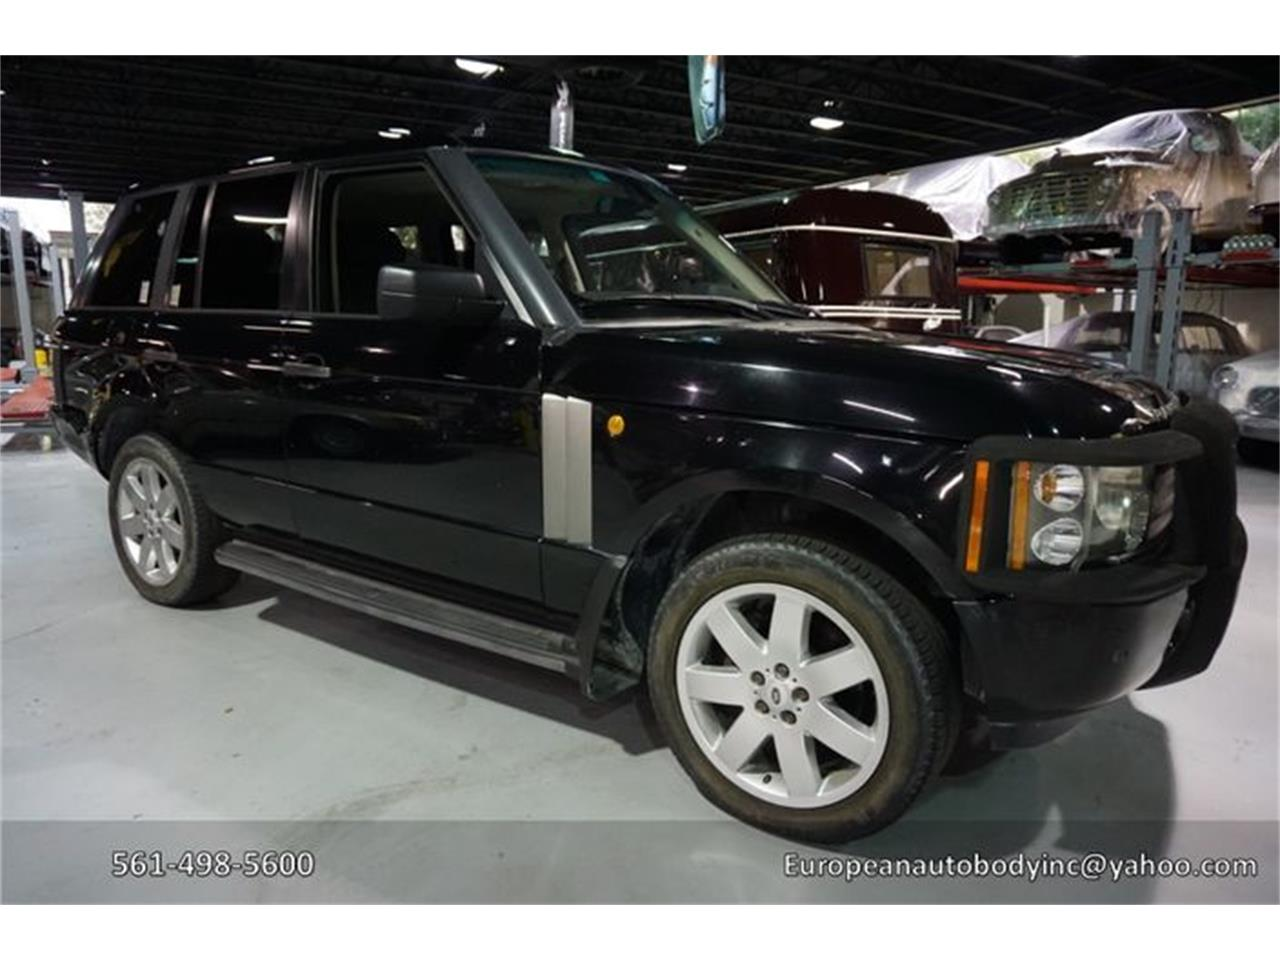 2005 Range Rover For Sale >> 2005 Land Rover Range Rover For Sale Classiccars Com Cc